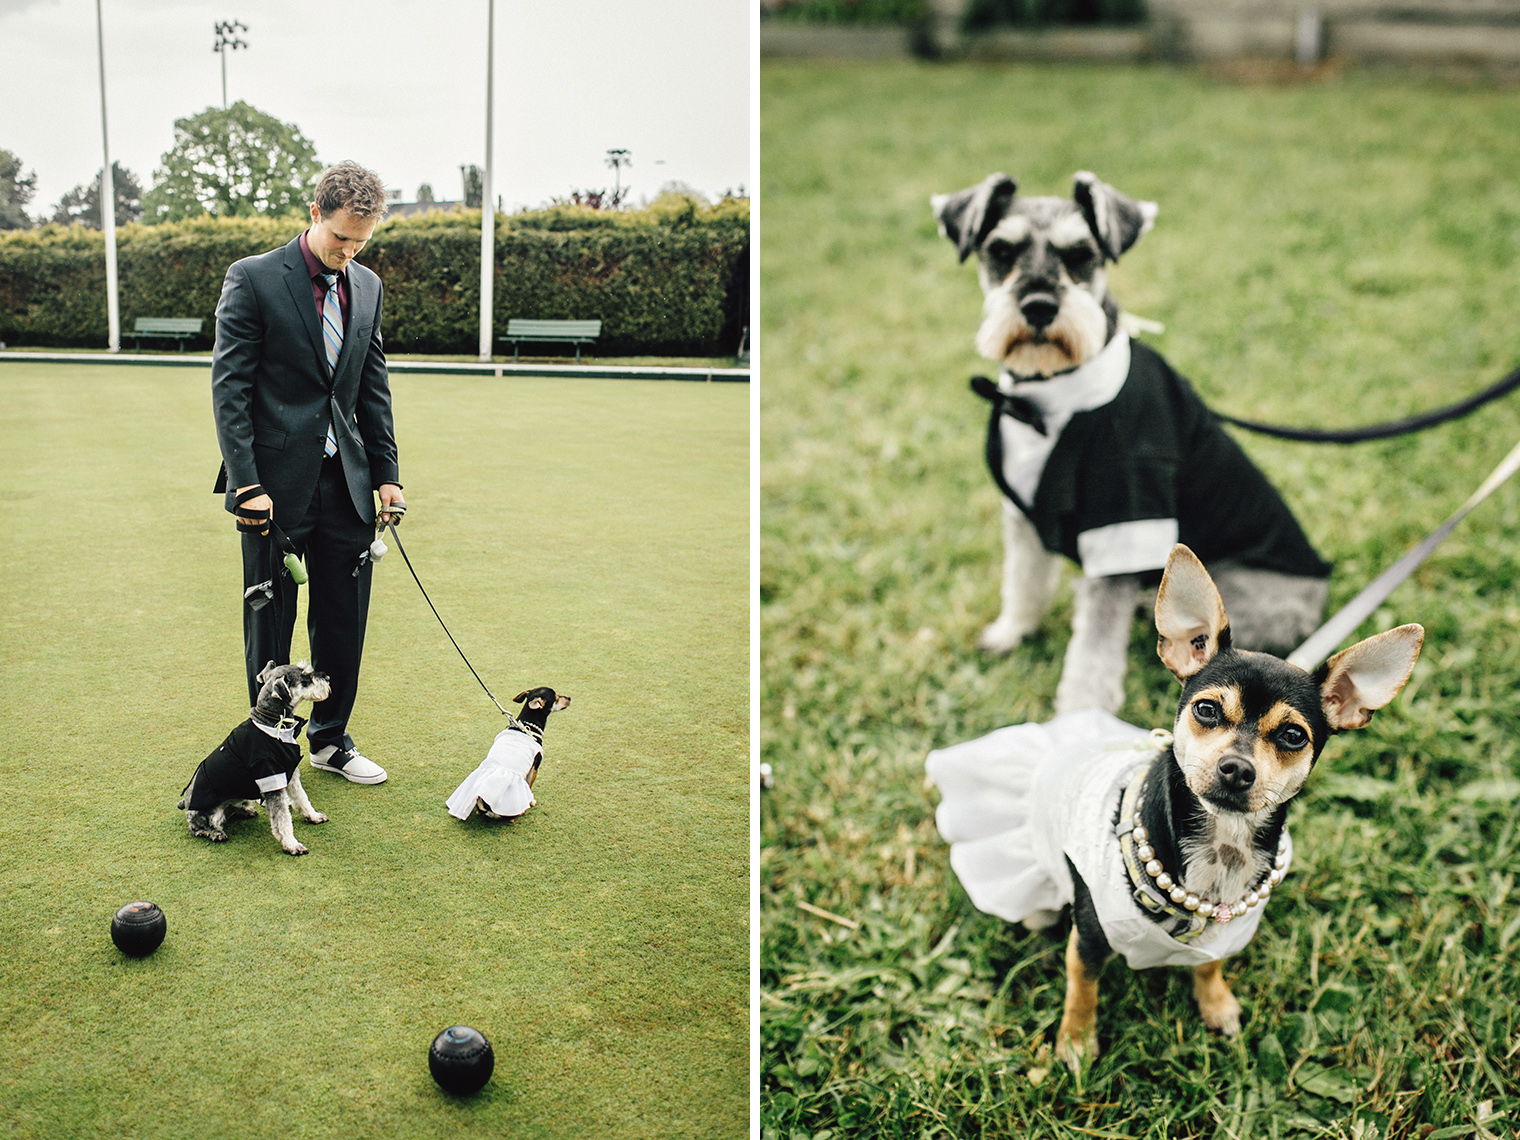 wedding pups at lawn bowling wedding